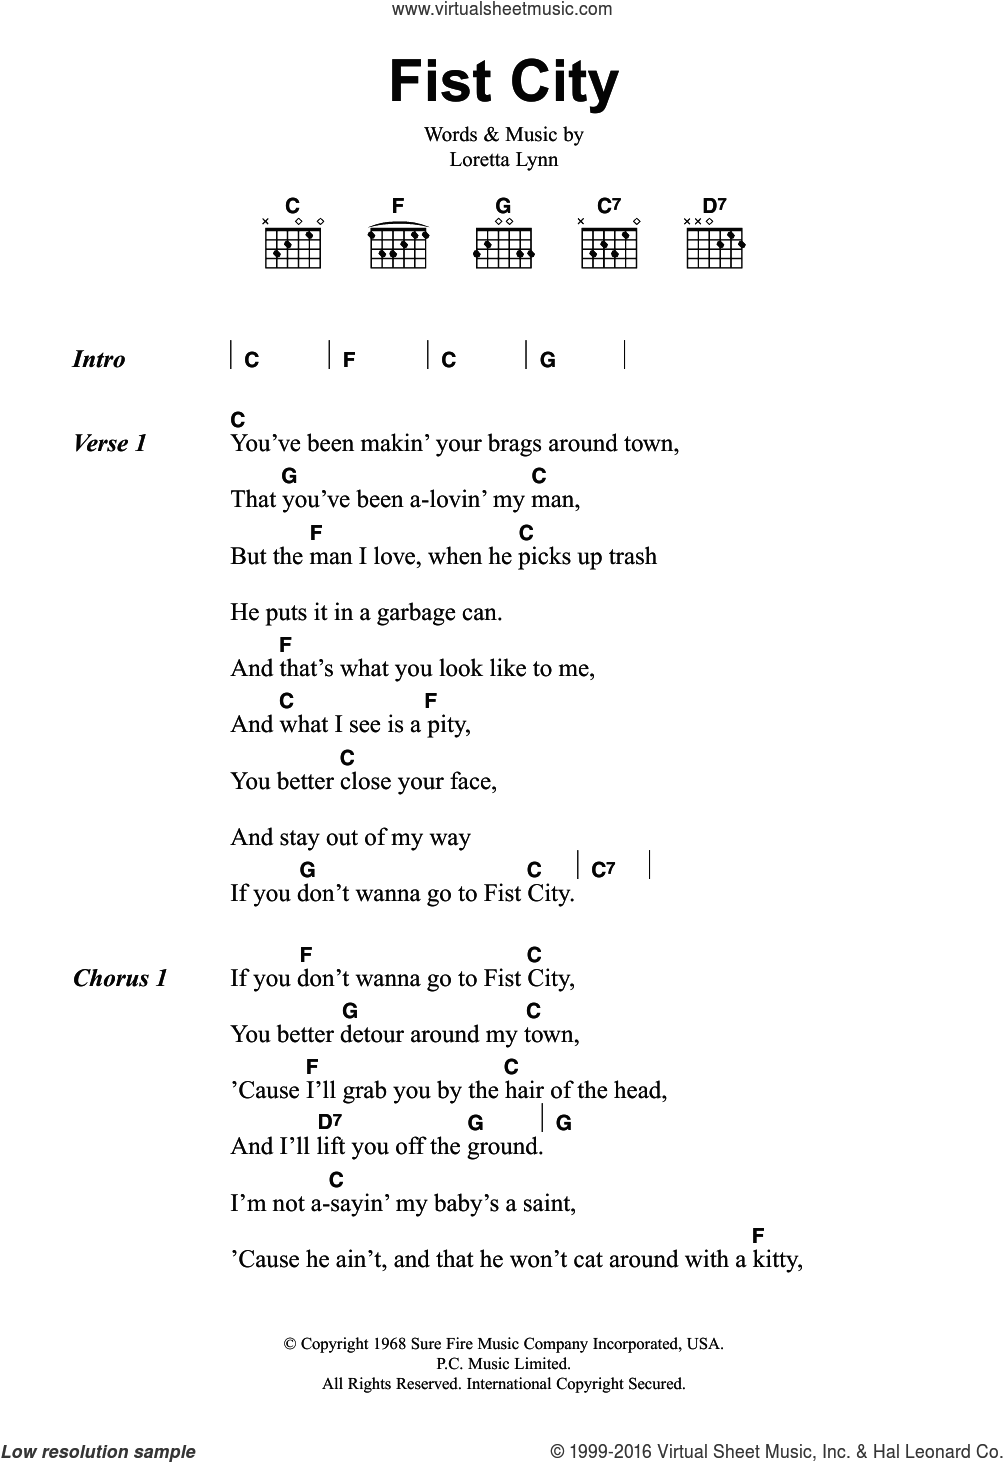 Fist City sheet music for guitar (chords) by Loretta Lynn, intermediate skill level